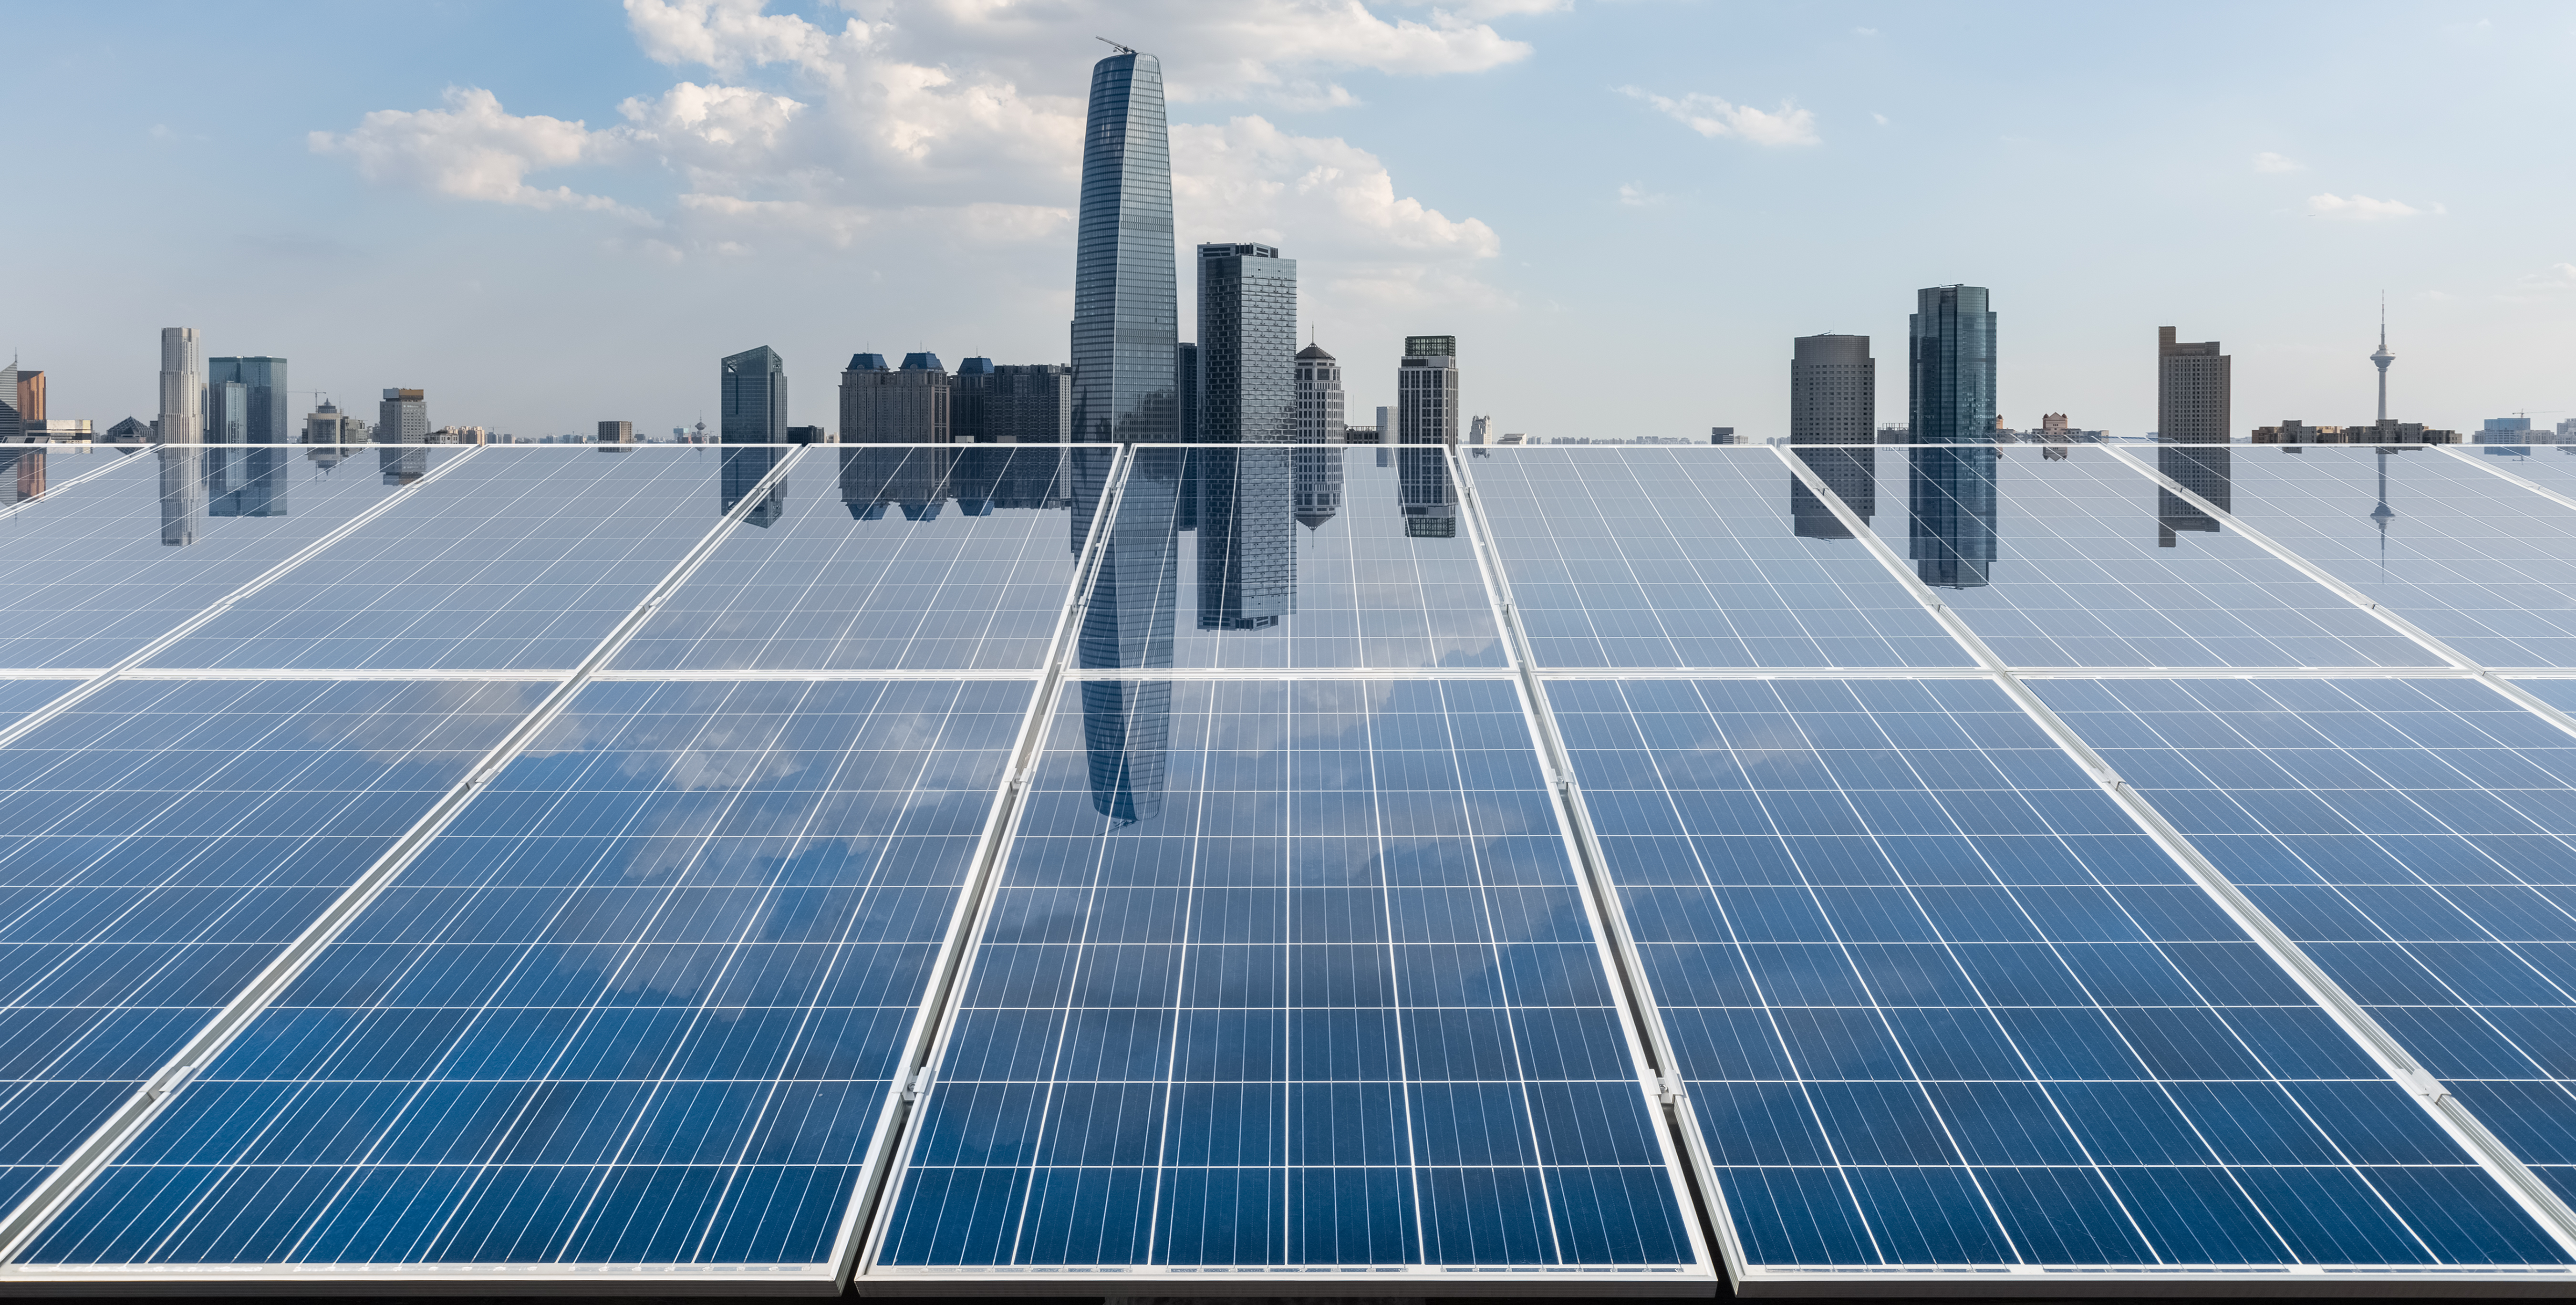 solar-energy-with-city-skyline-PD3PGNQ.png